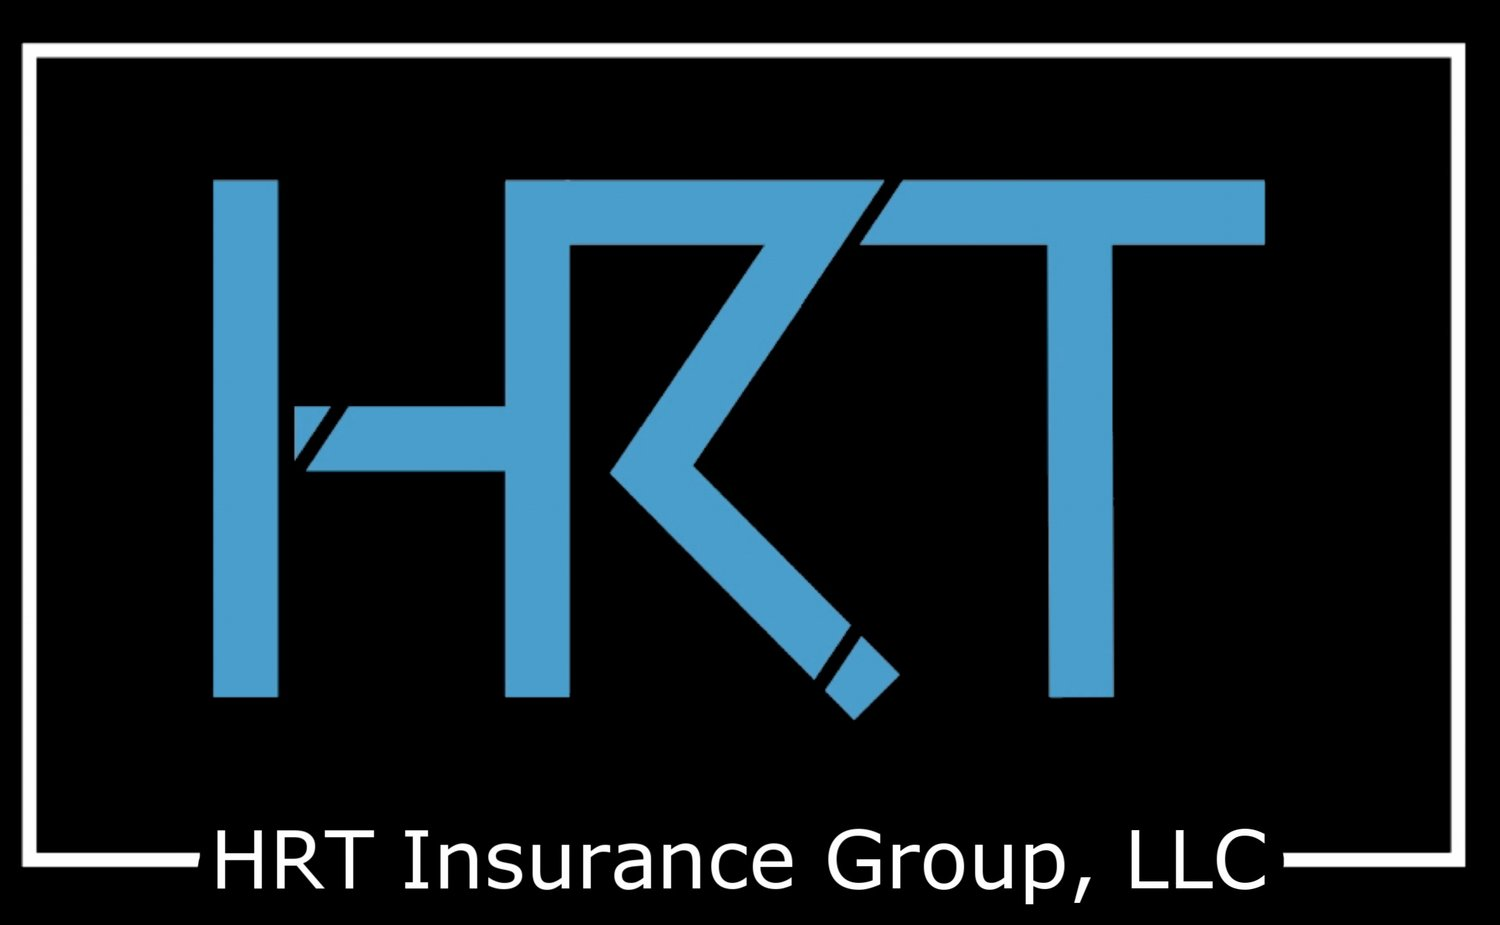 HRT Insurance Group, LLC